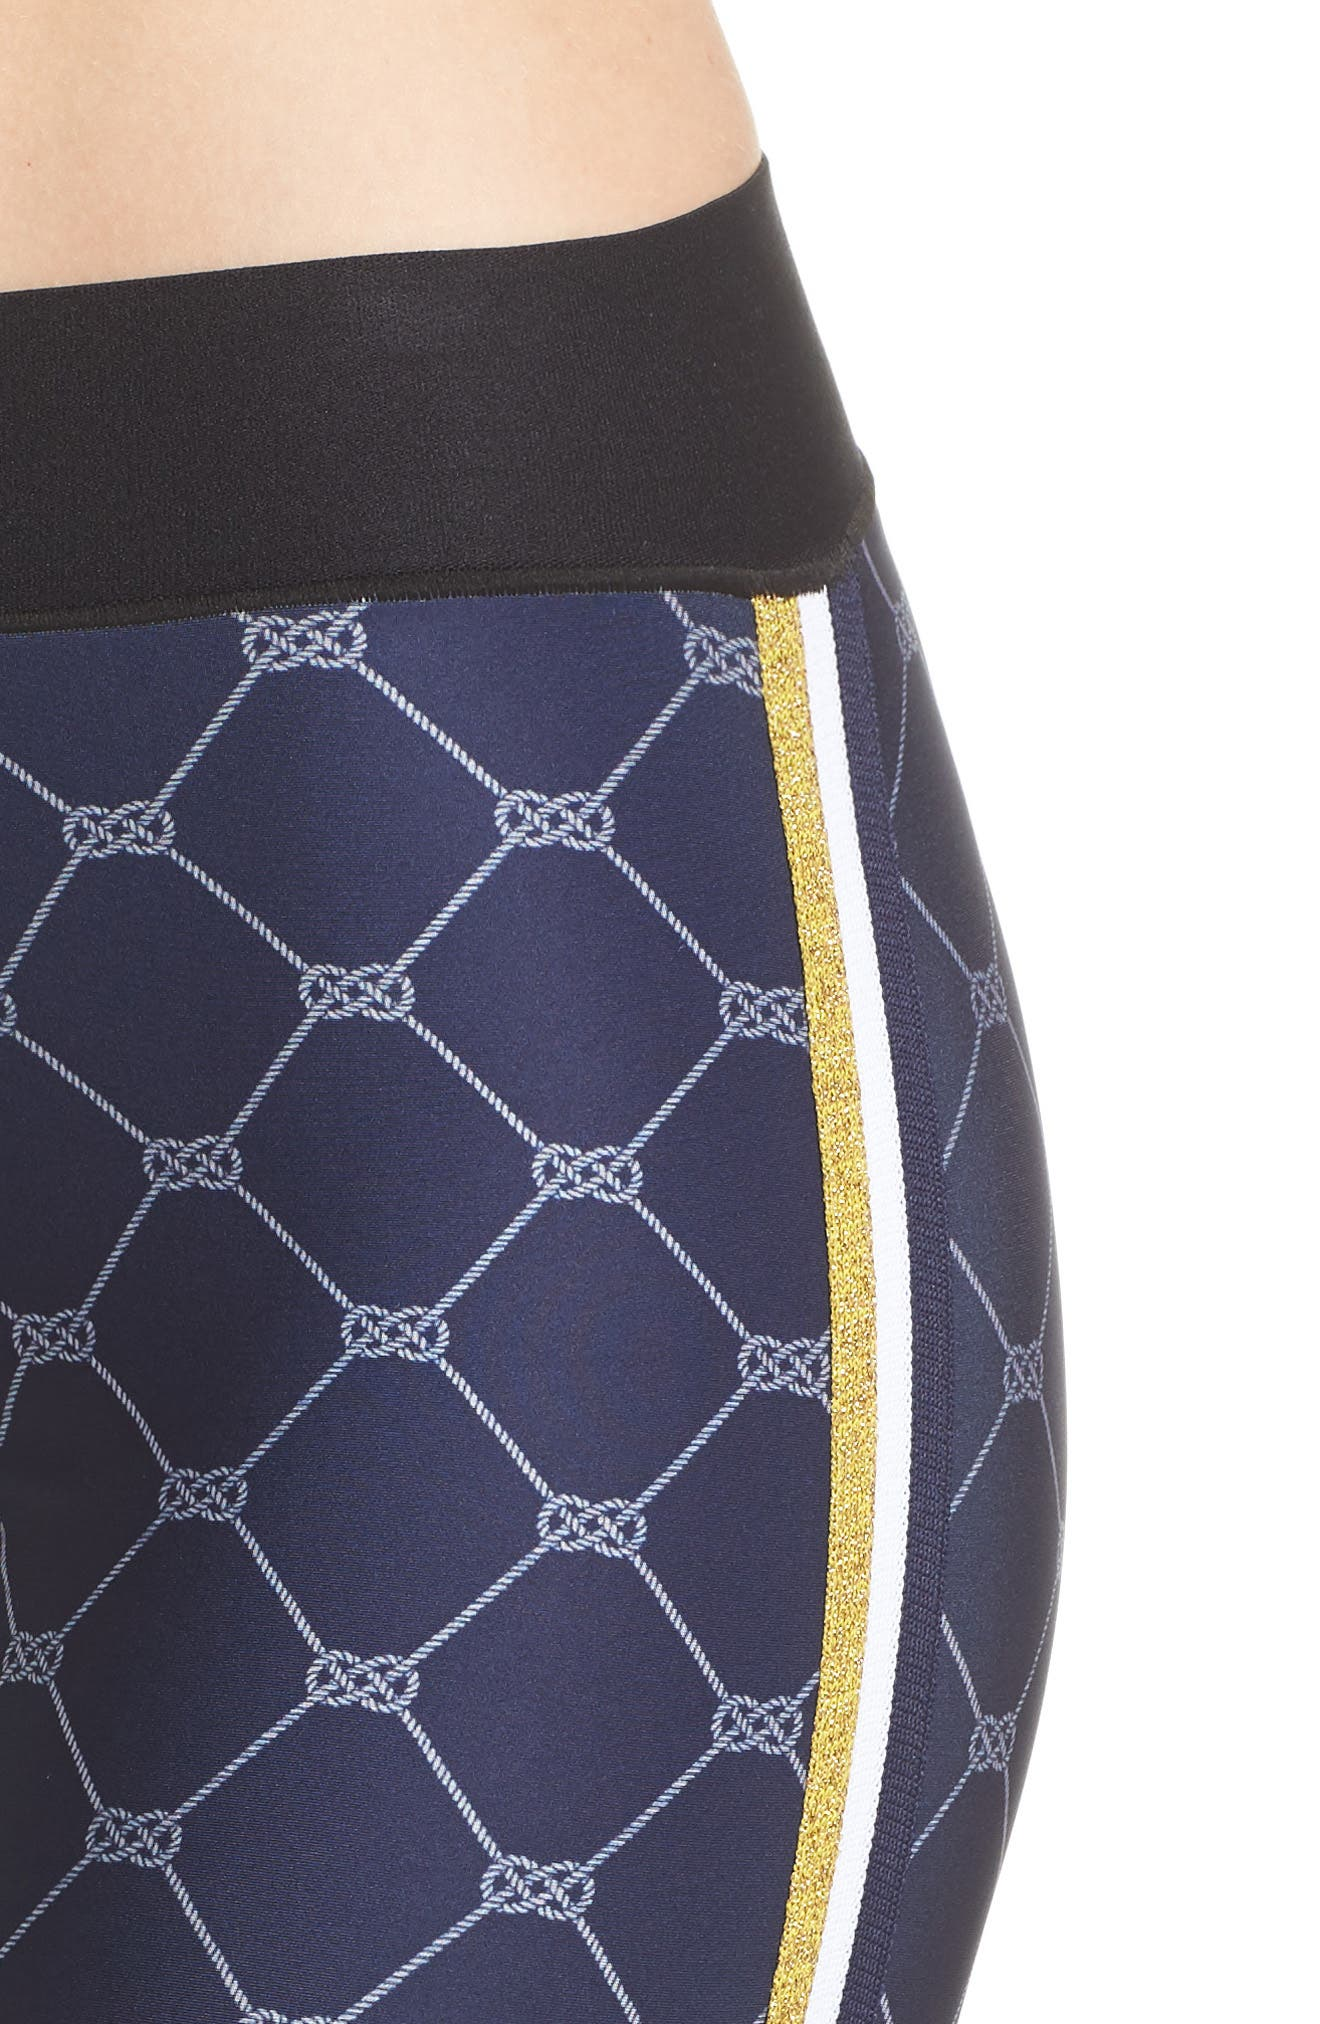 Ultra Sailor Leggings,                             Alternate thumbnail 4, color,                             NAVY/ NAVY